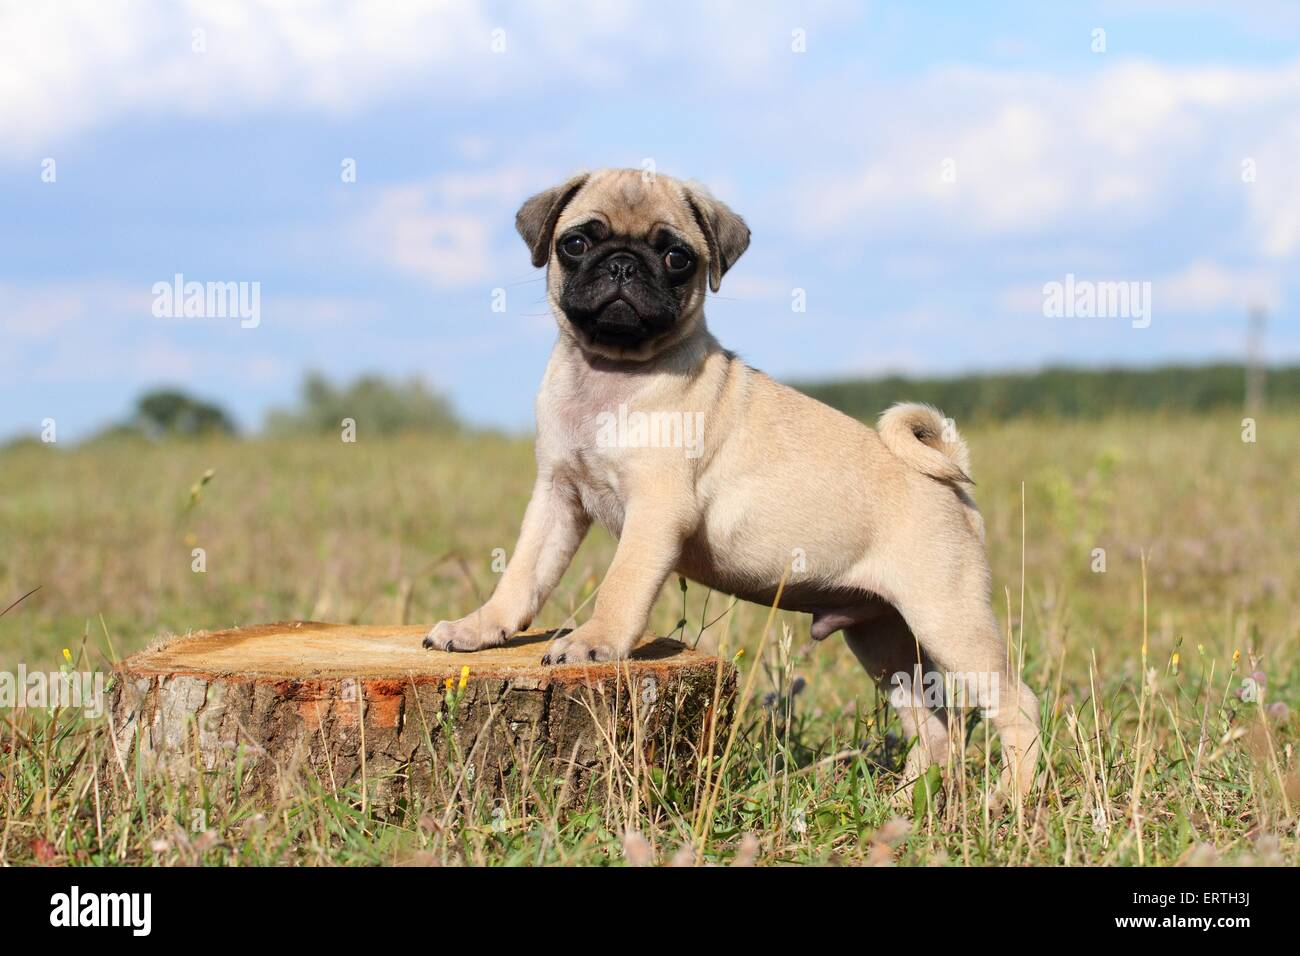 pug puppy - Stock Image